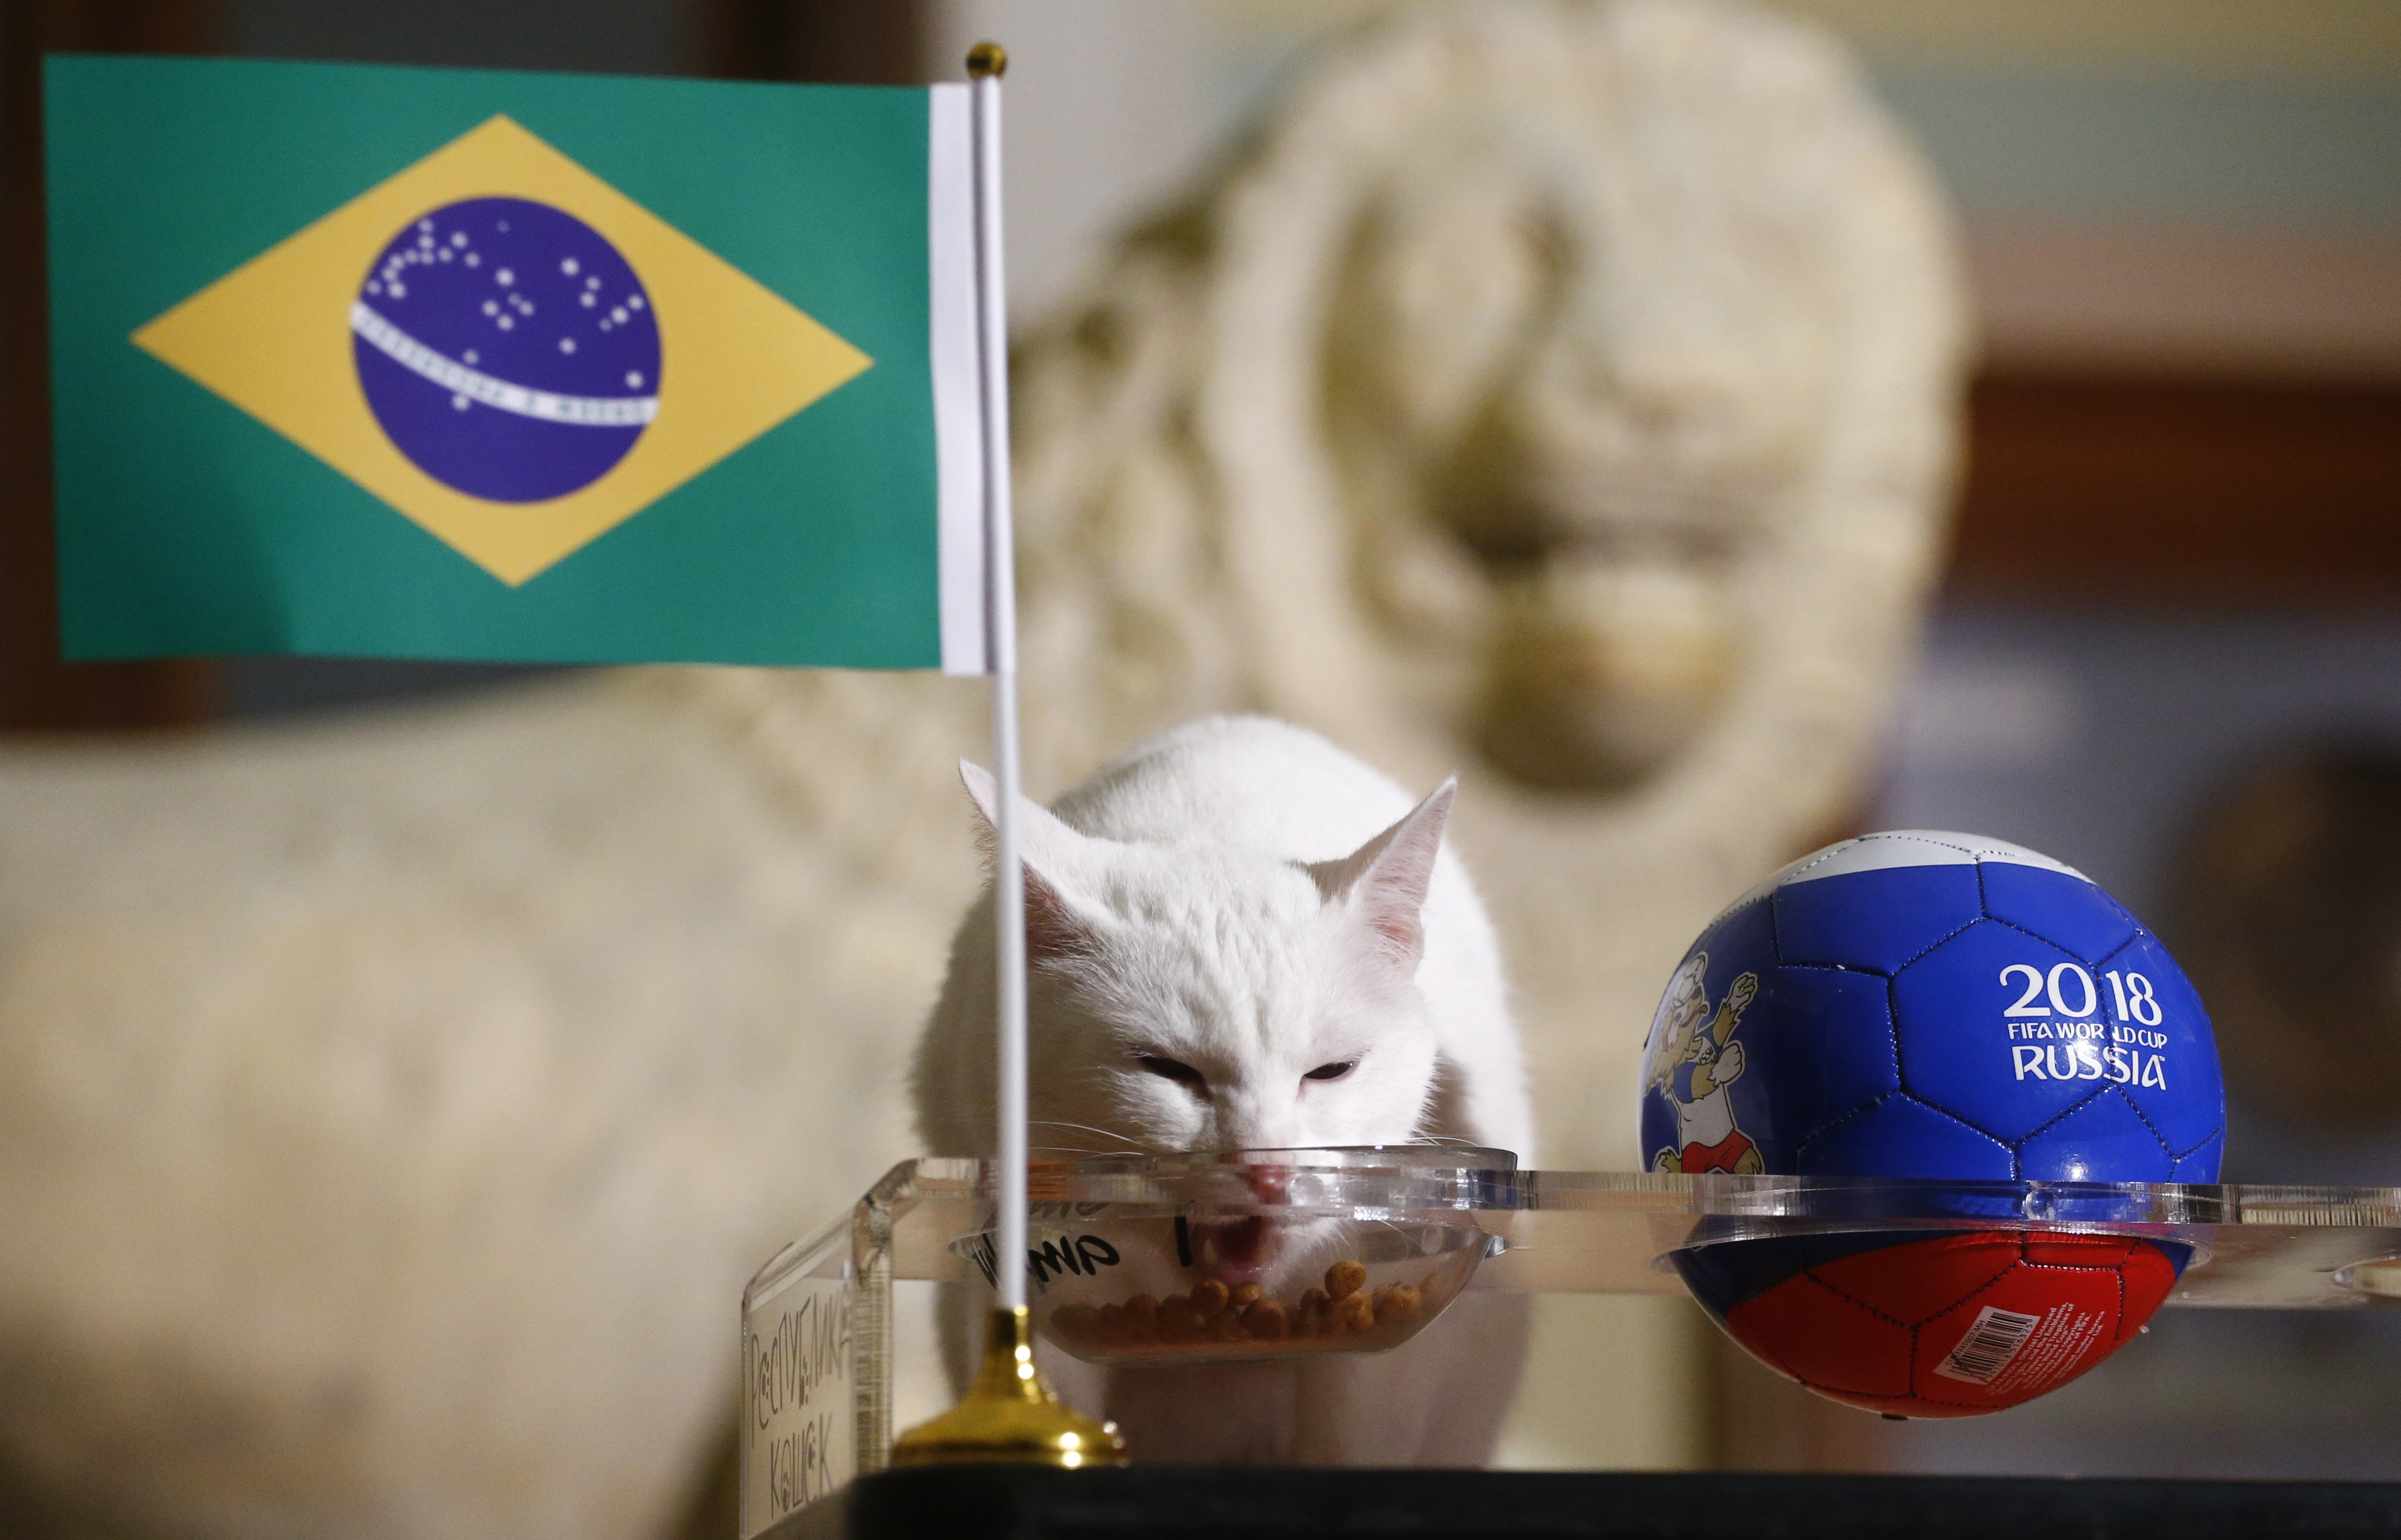 Achilles the cat, one of the State Hermitage Museum mice hunters, attempts to predict the result of the 2018 FIFA World Cup match between Brazil and Costa Rica during an event in Saint Petersburg, Russia June 22, 2018. REUTERS/Anton Vaganov - HP1EE6M0OQ5EI